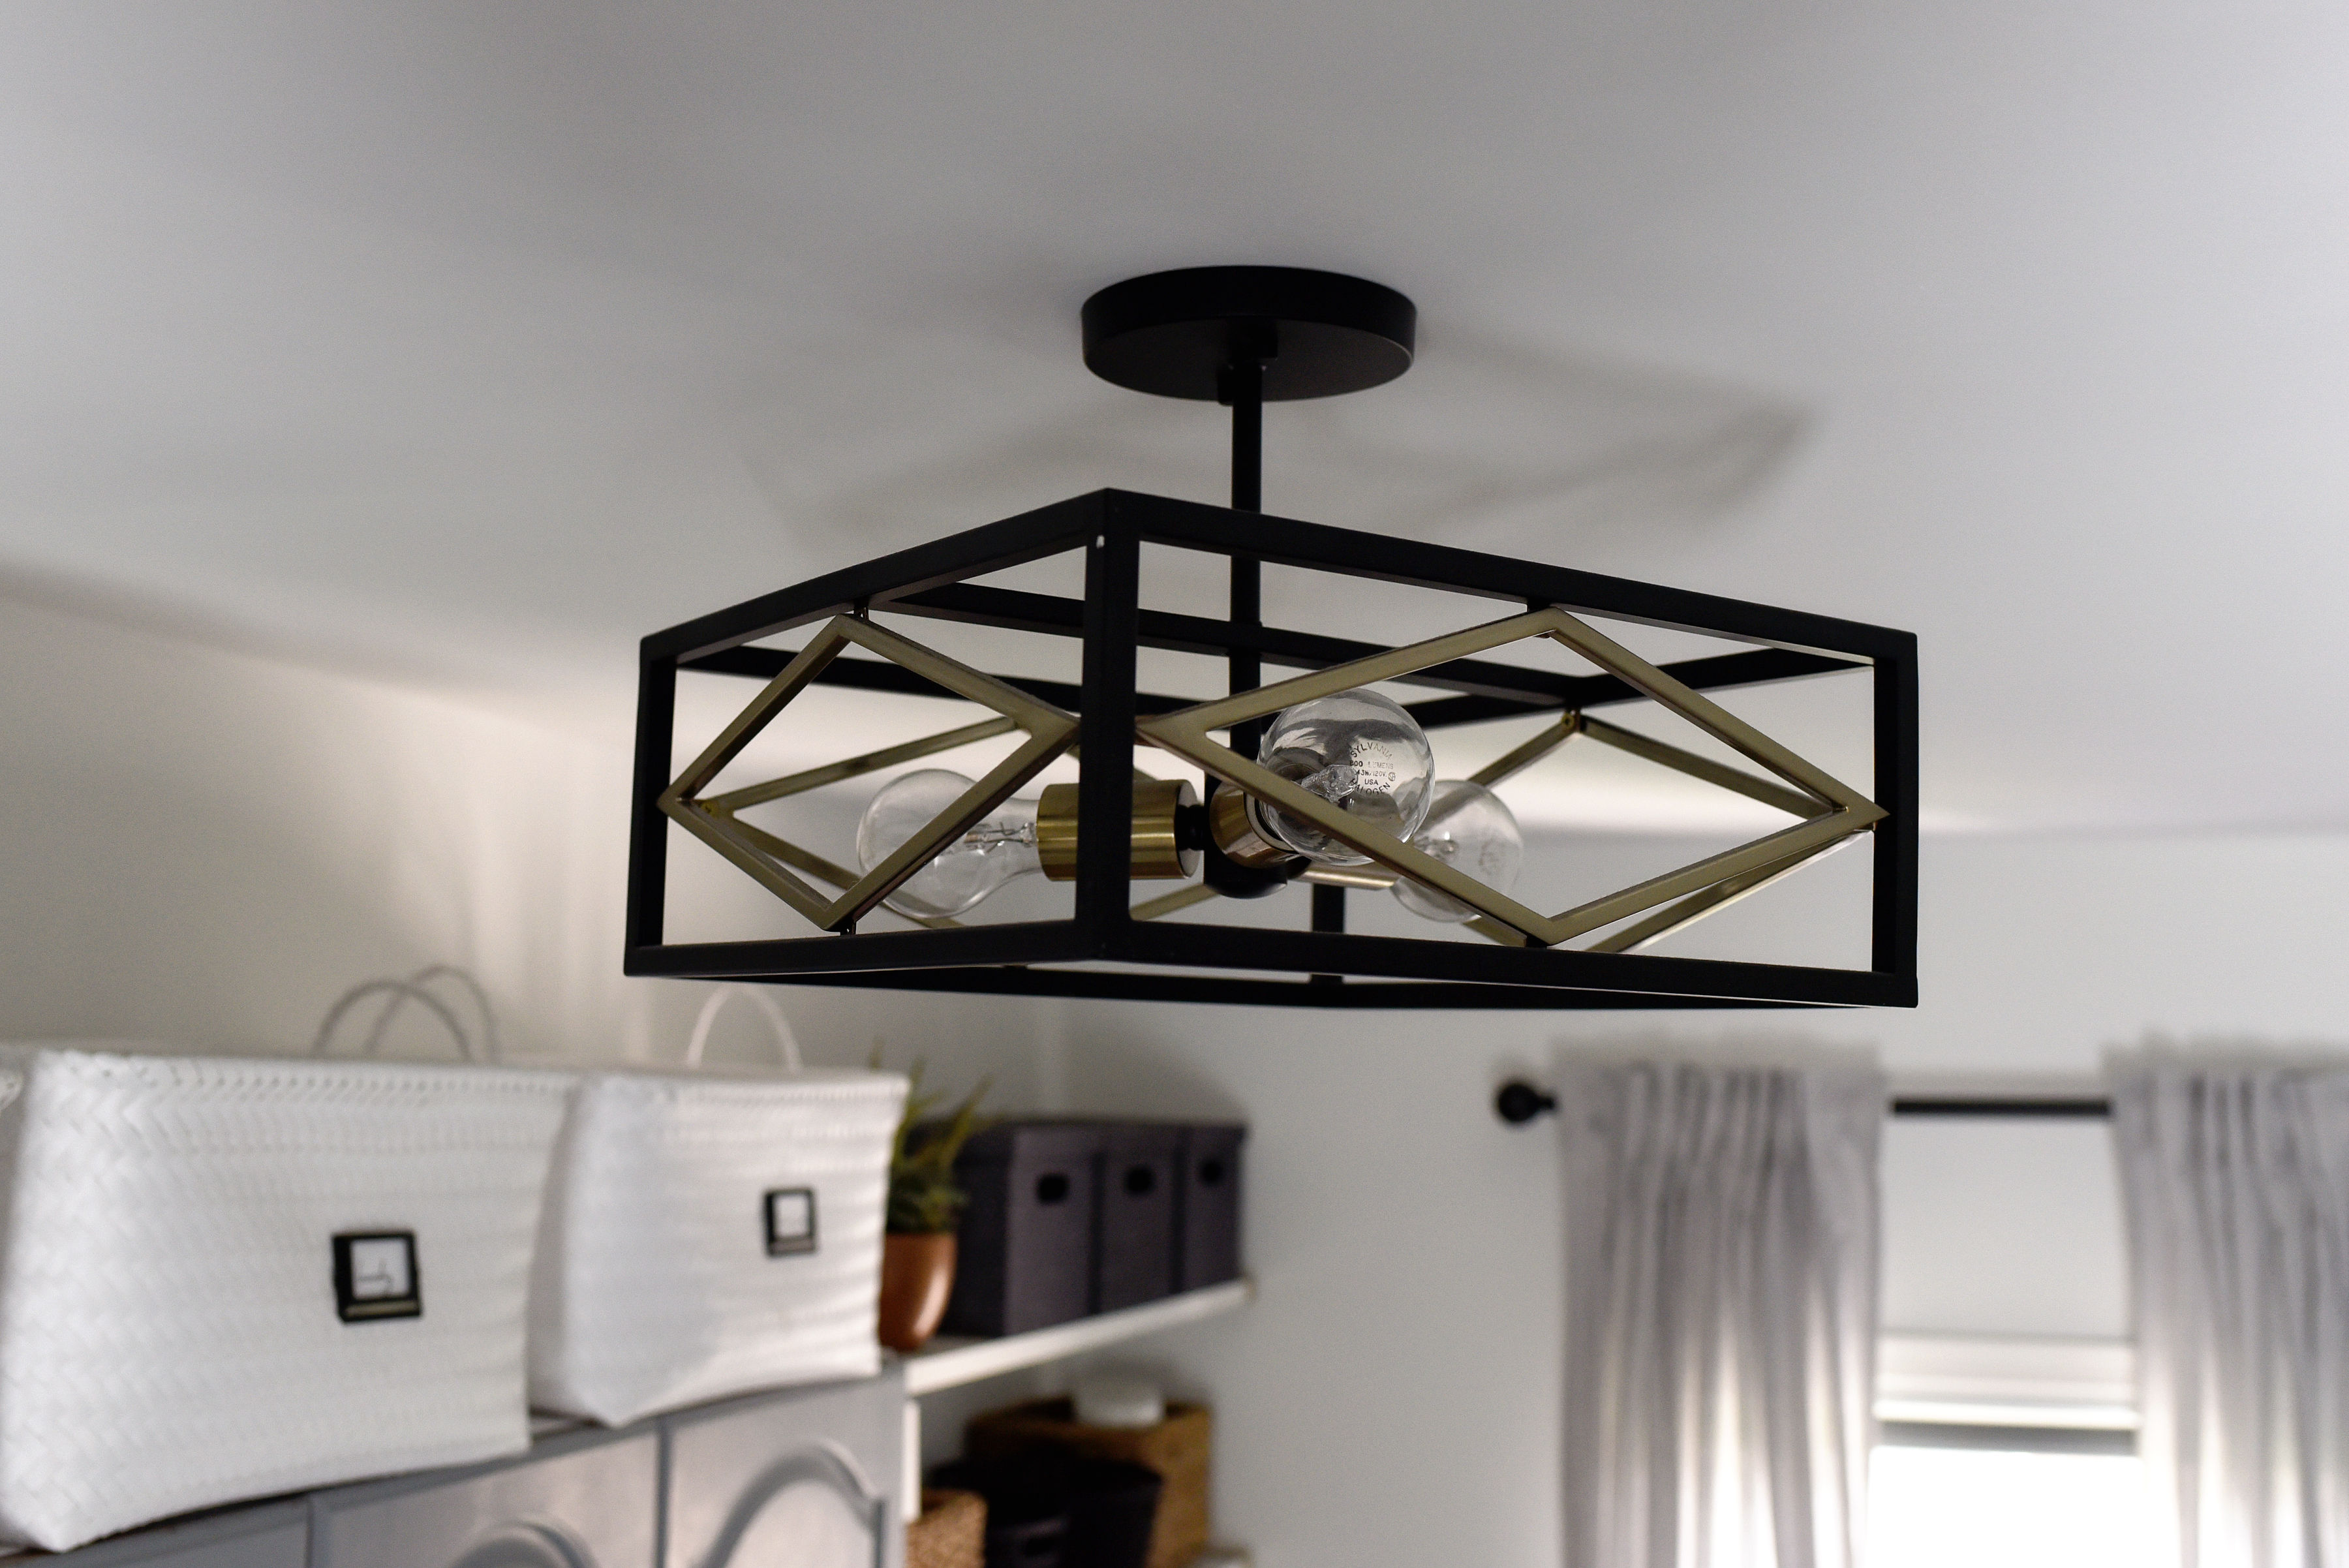 Black And Brass Semi Flushmount Light For The Laundry Room This Is Our Bliss This Is Our Bliss